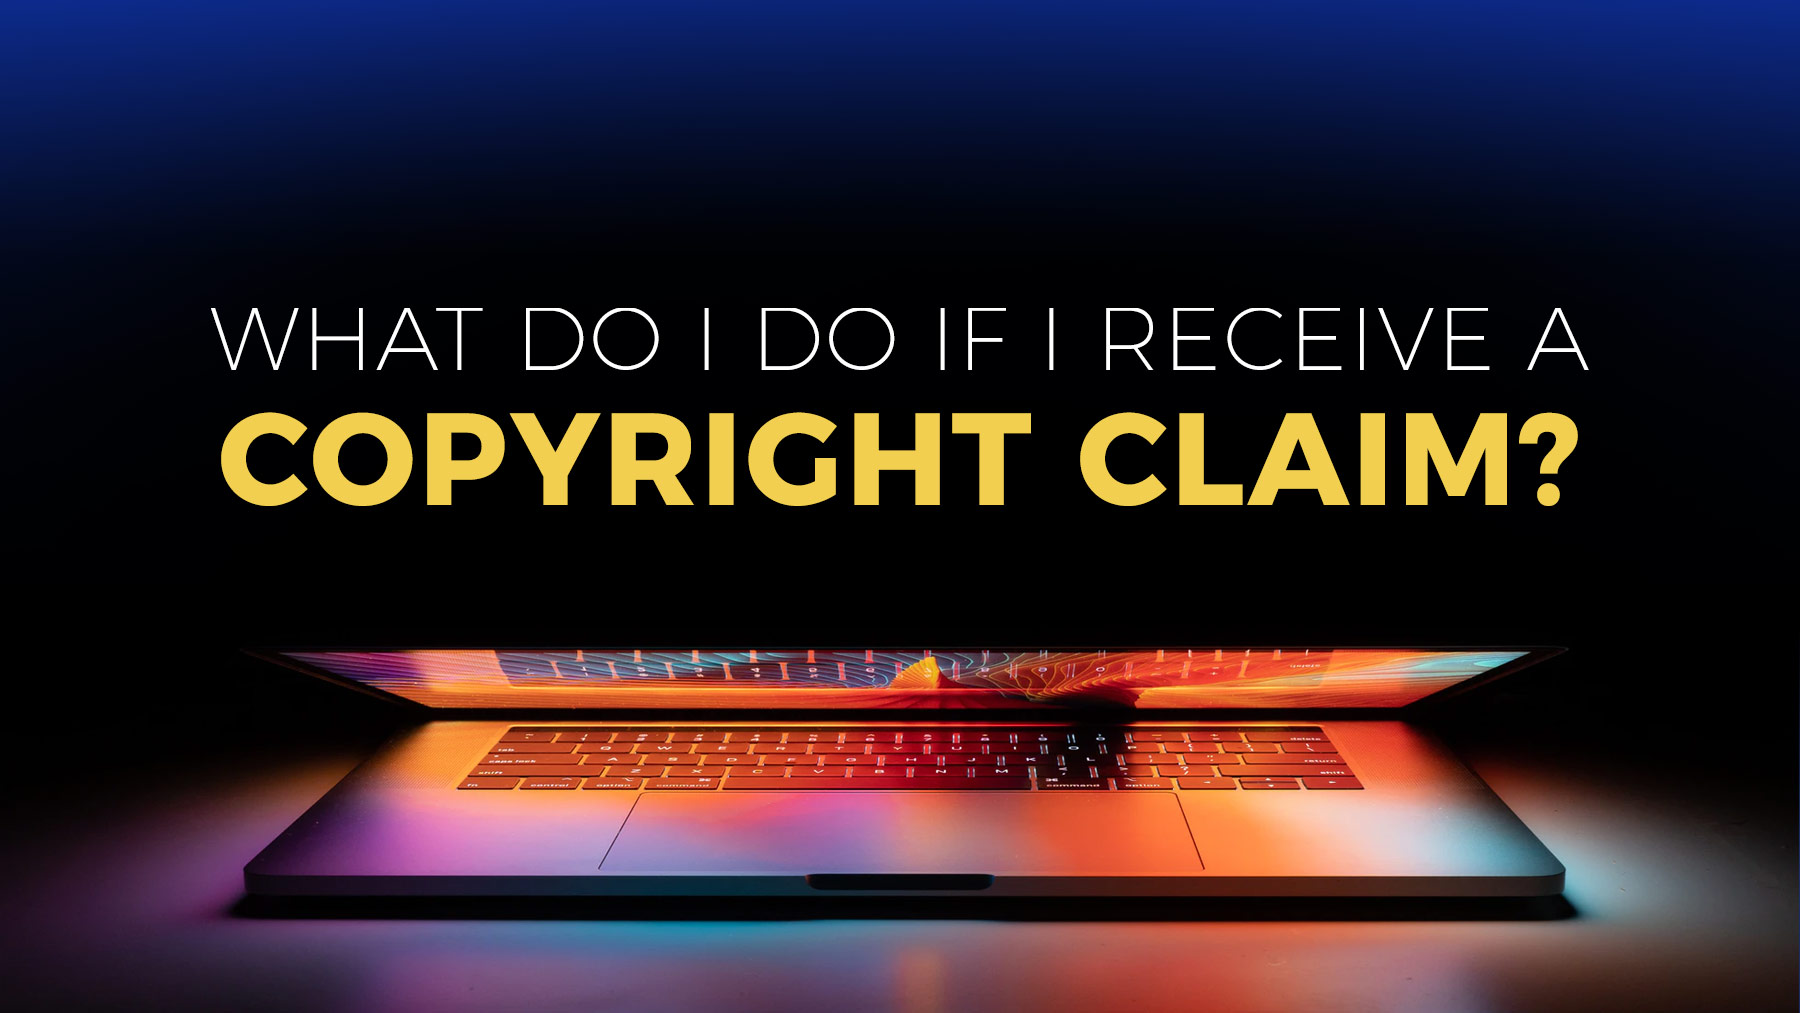 What do I do if I receive a copyright claim?